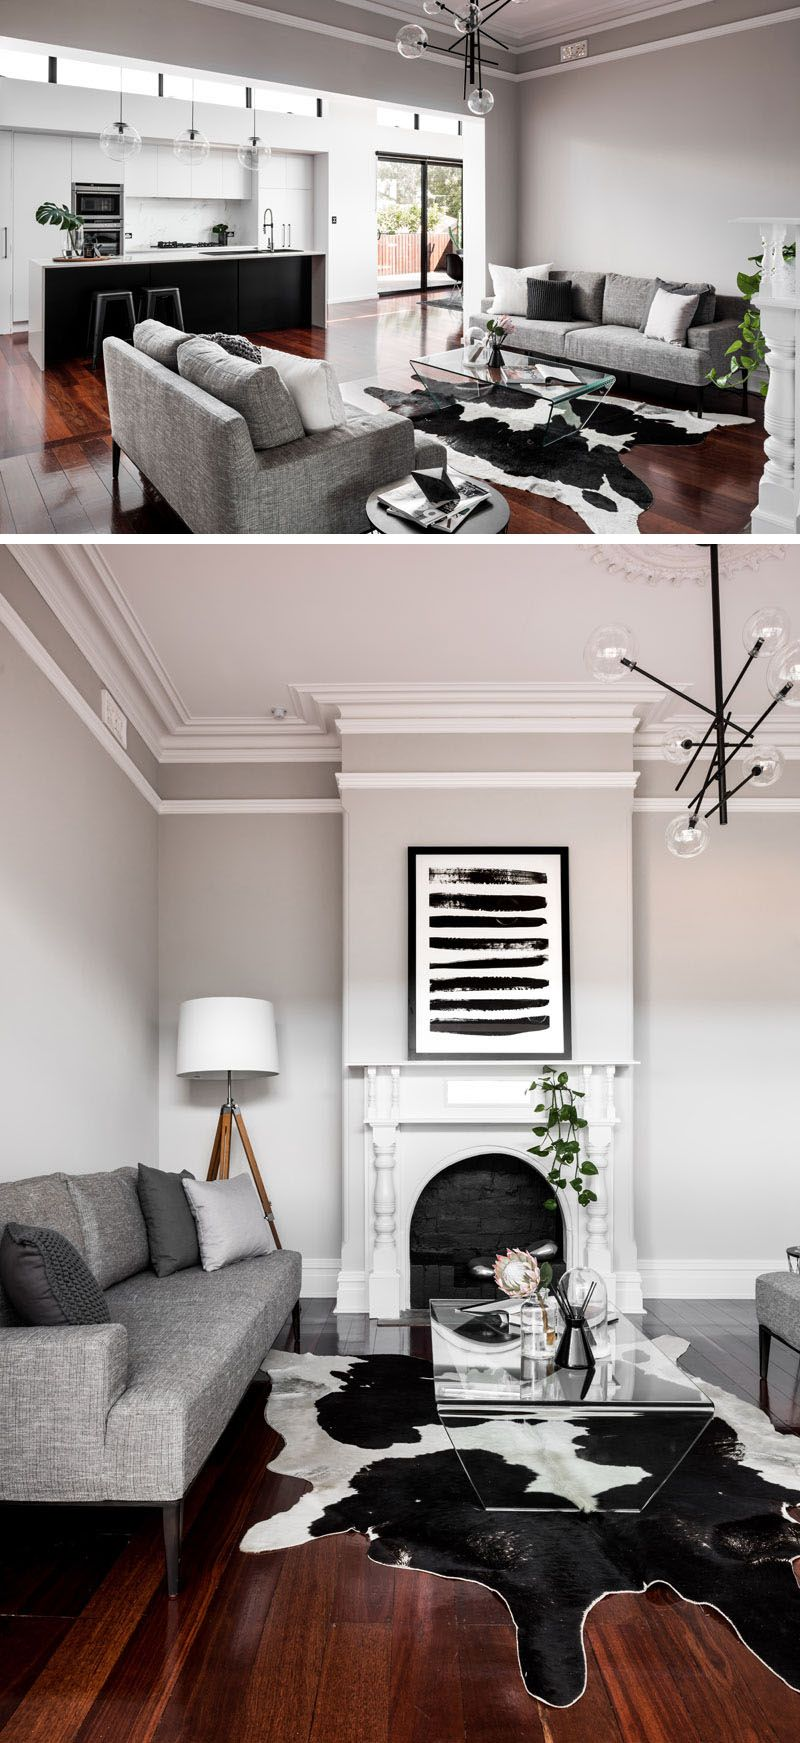 Small Crop Of Home Design Elements